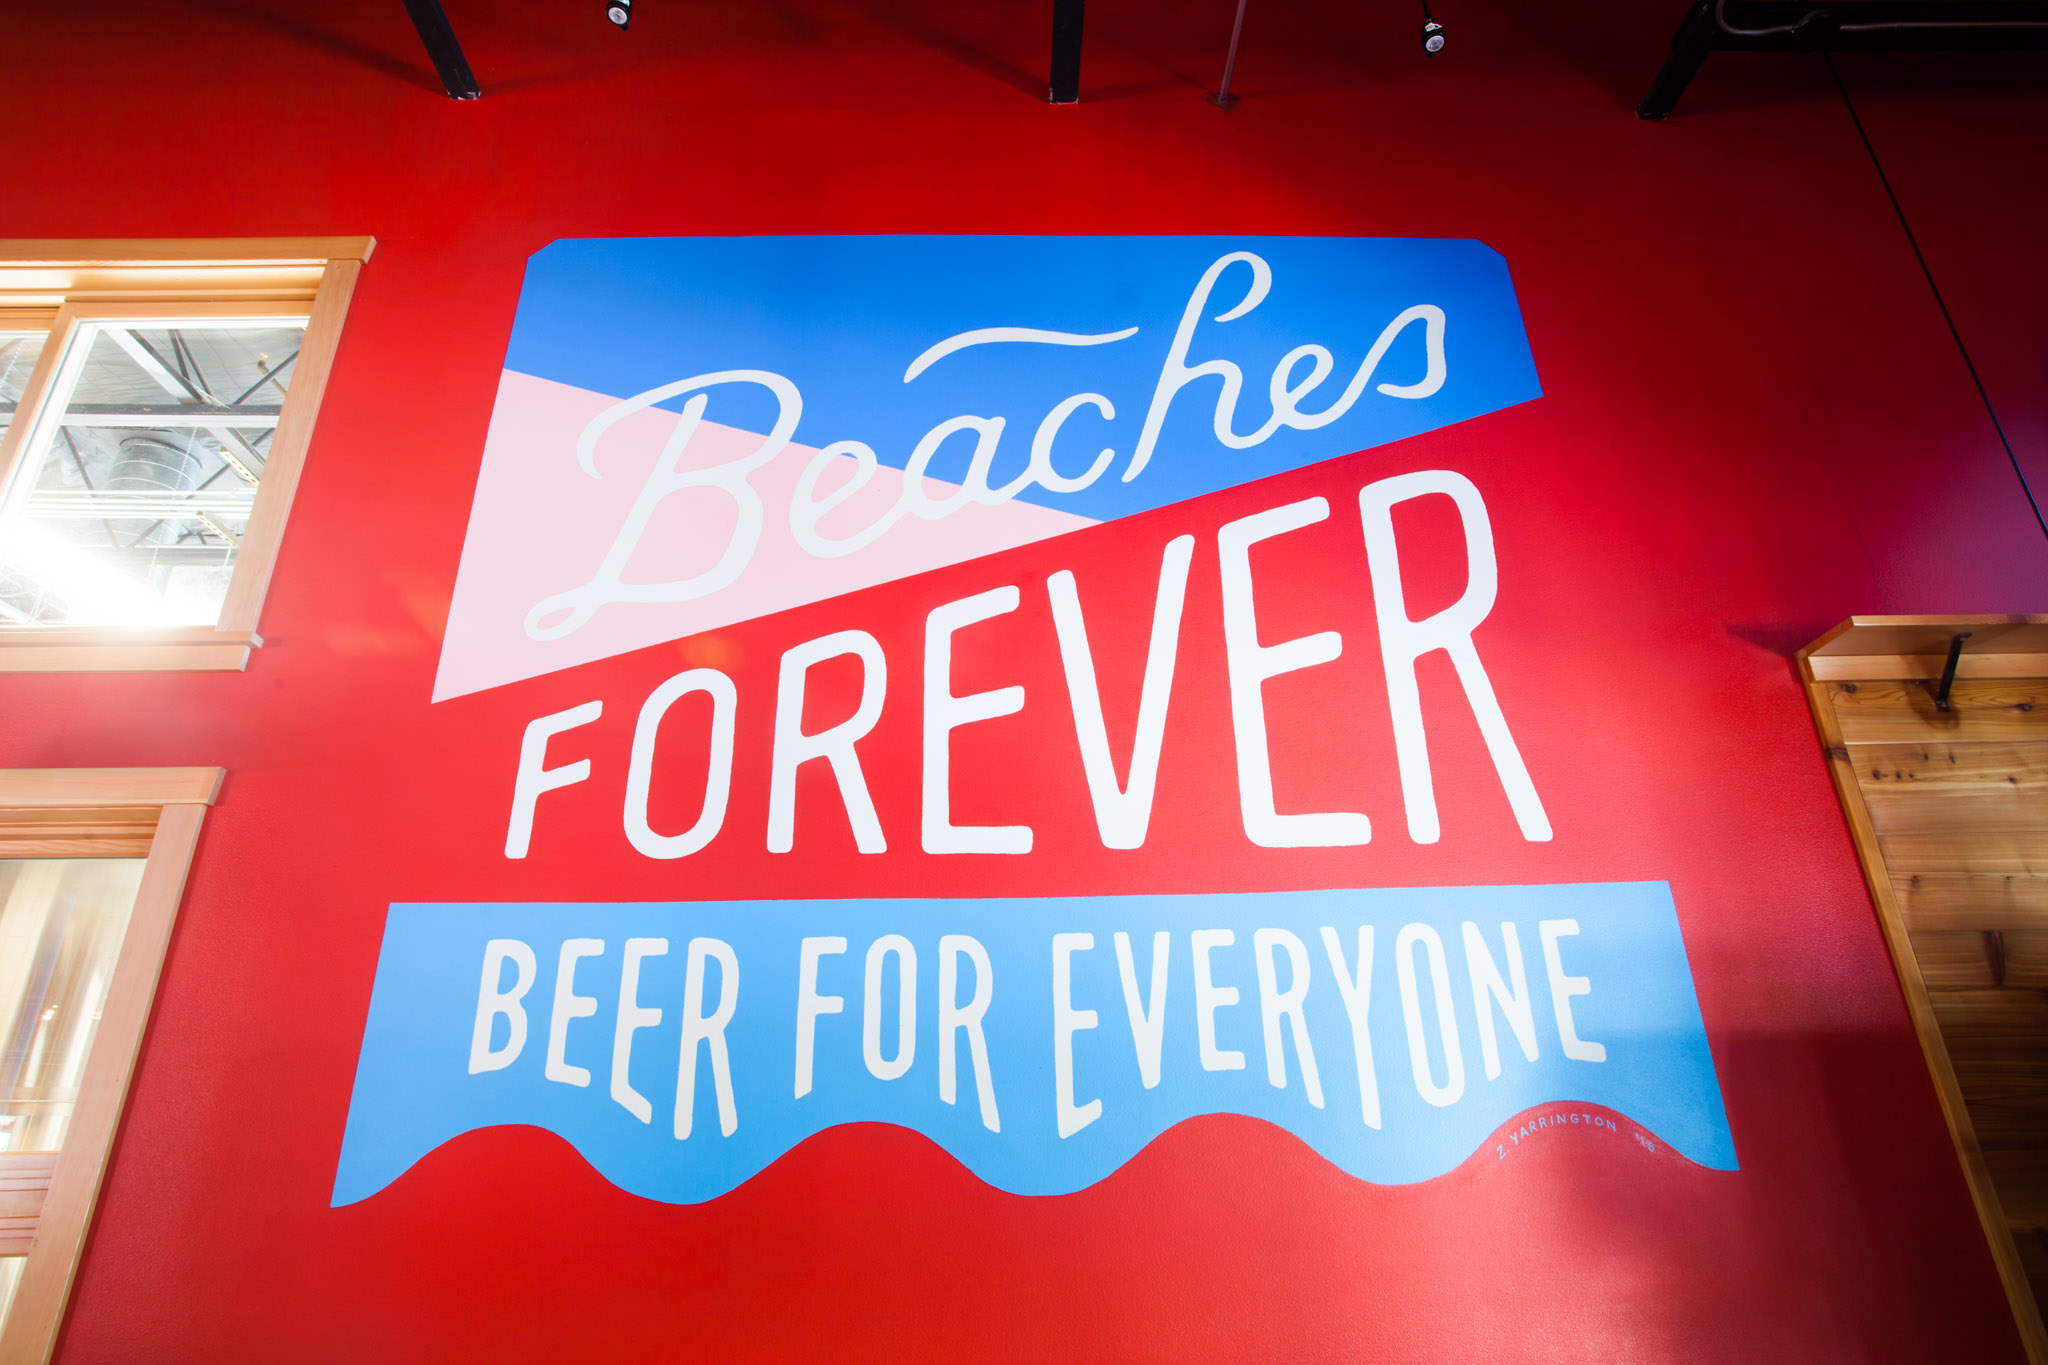 Beaches Forever Beer for Everyone